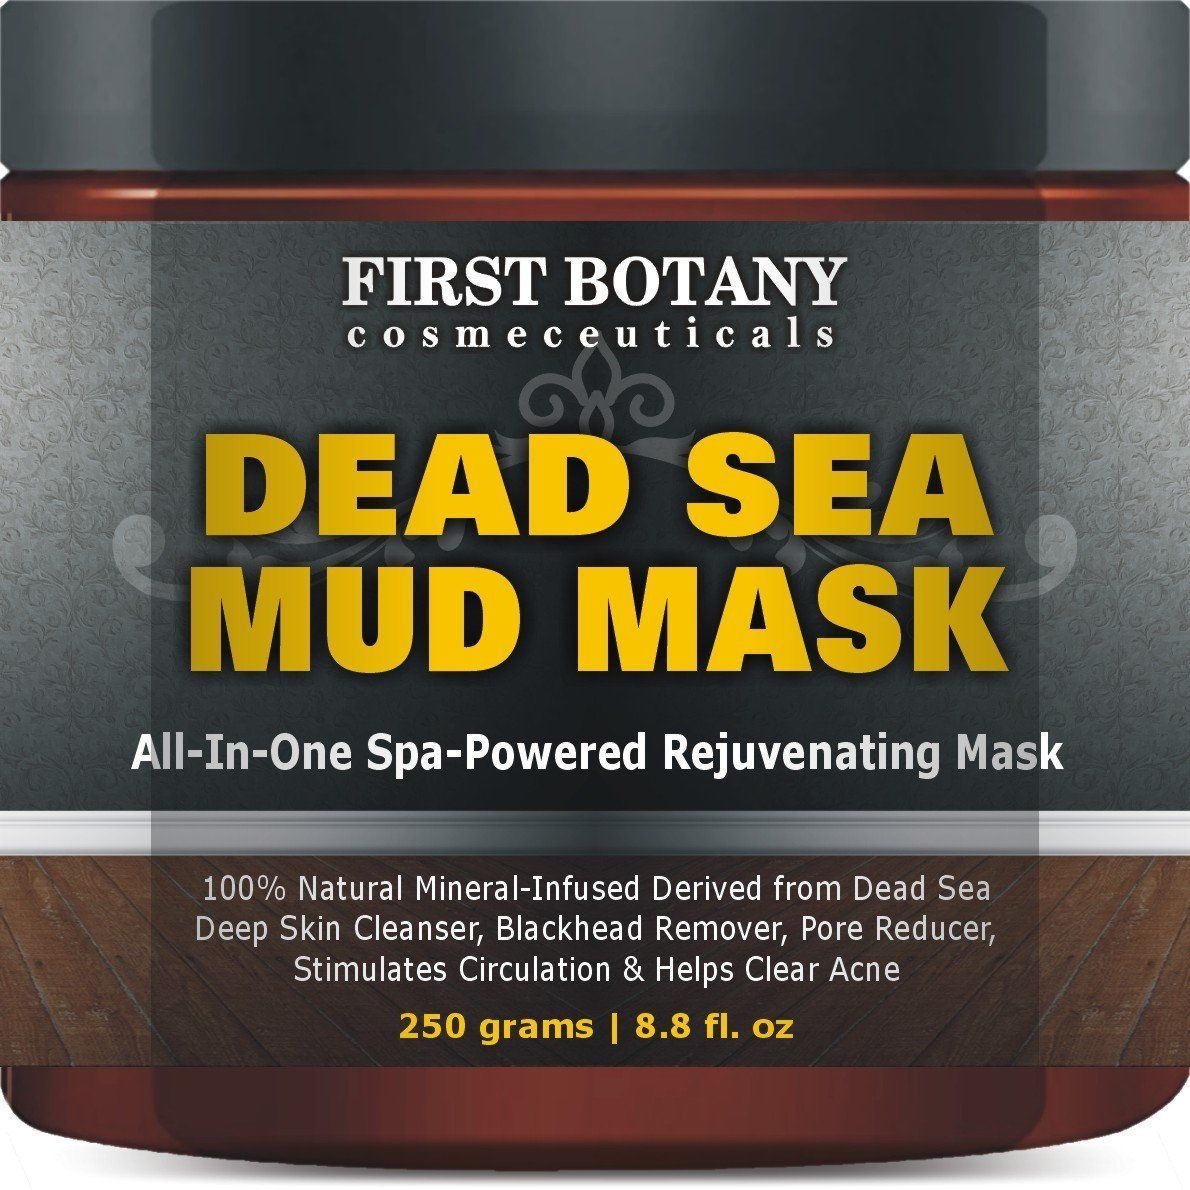 100% Natural Mineral-Infused Dead Sea Mud Mask 8.8 oz for Facial Treatment Sk... - $13.51